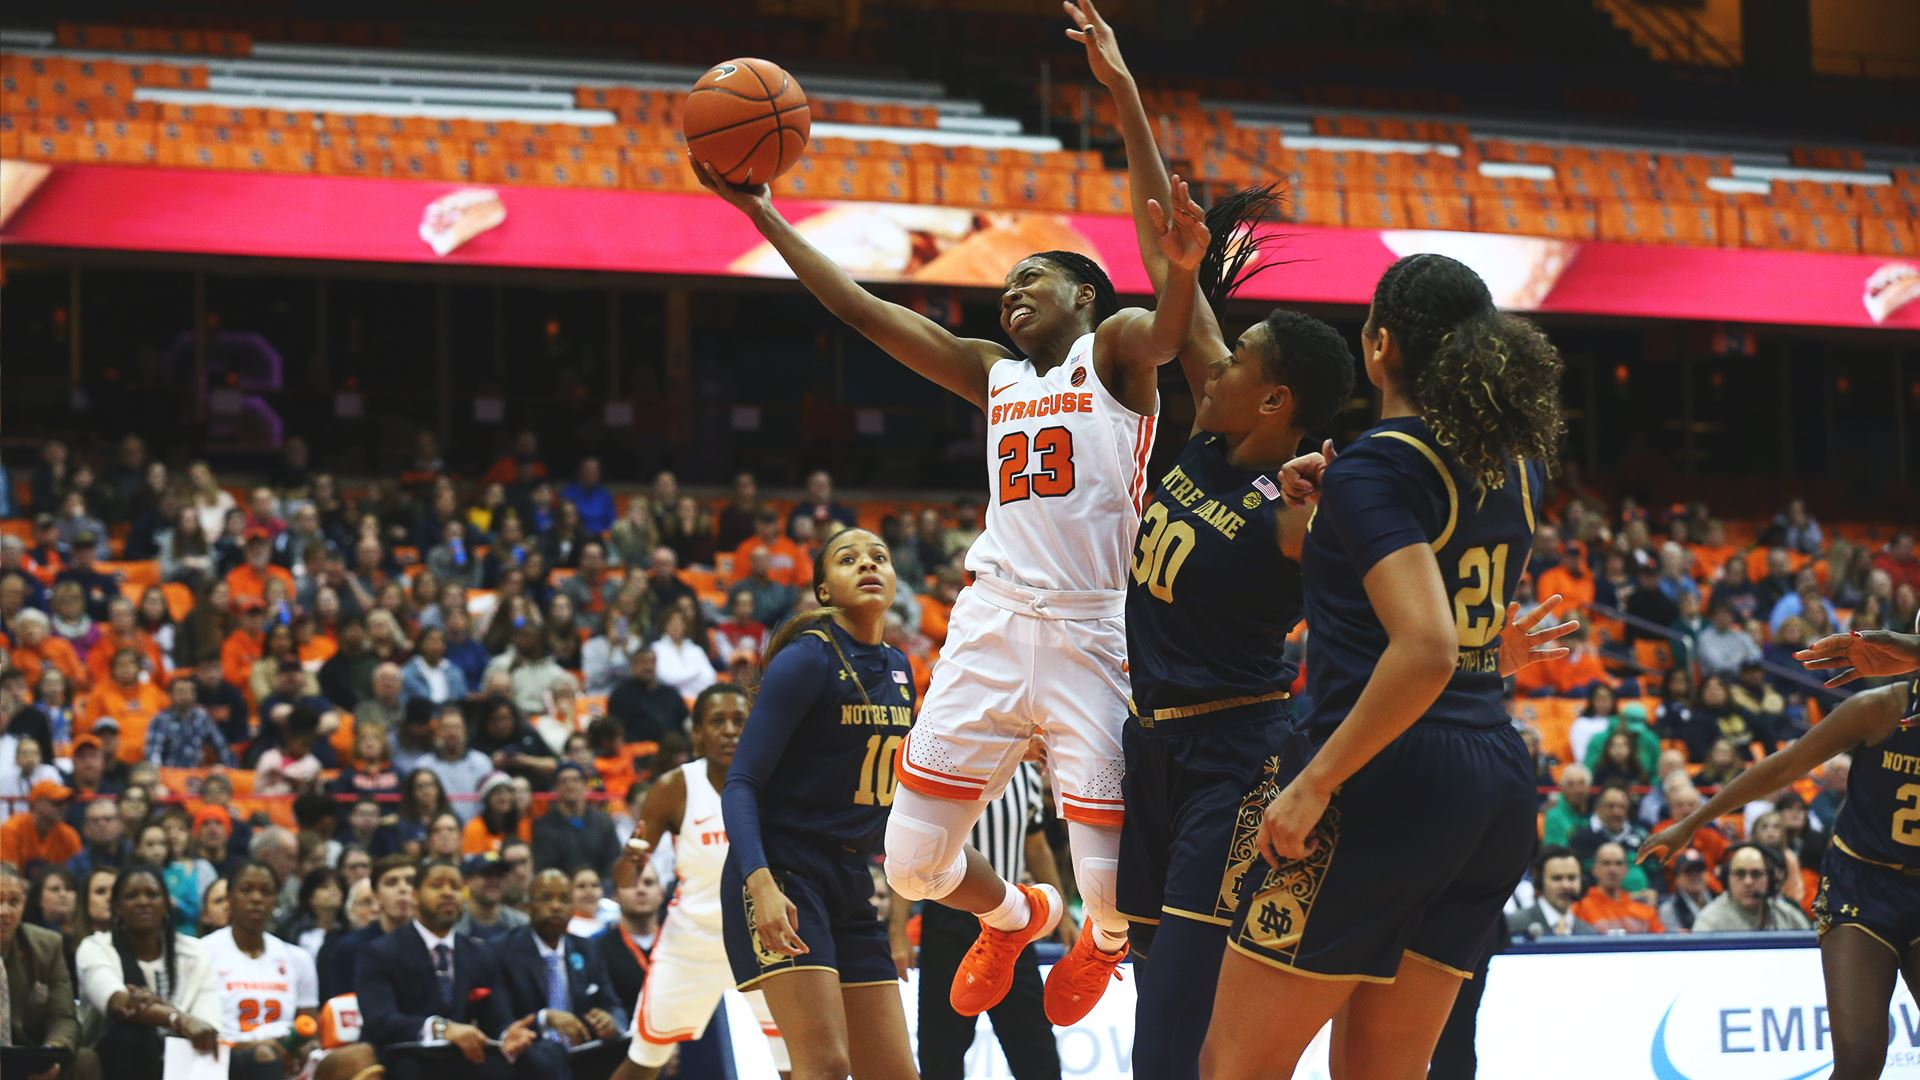 Syracuse takes down Notre Dame in overtime, 74-63